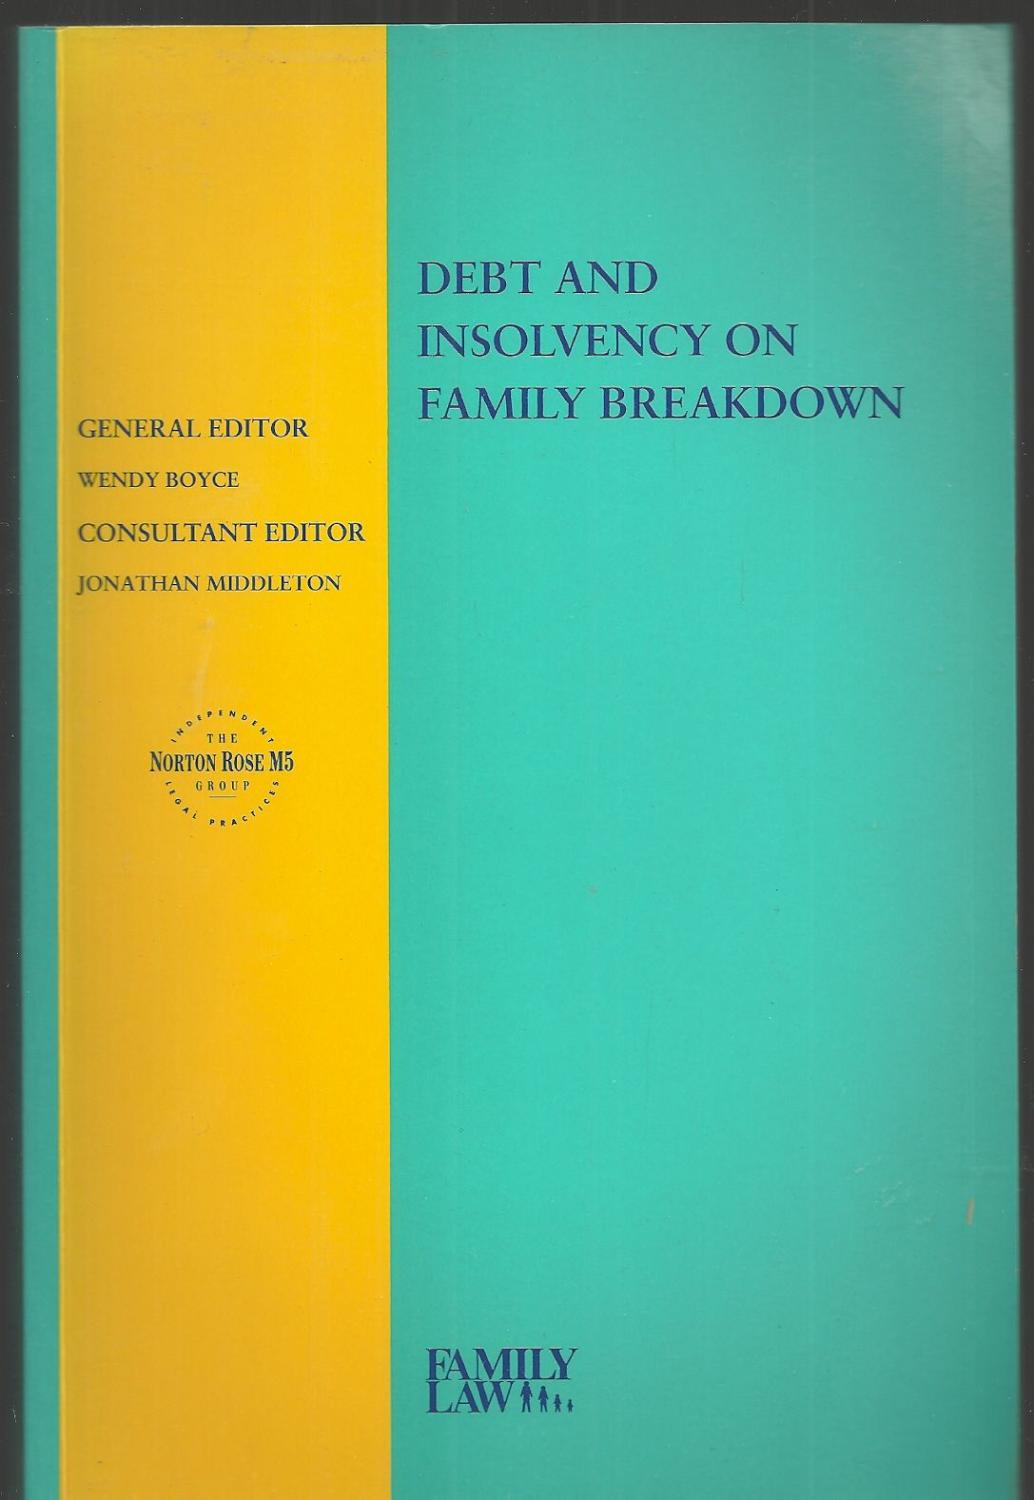 Debt and Insolvency on Family Breakdown